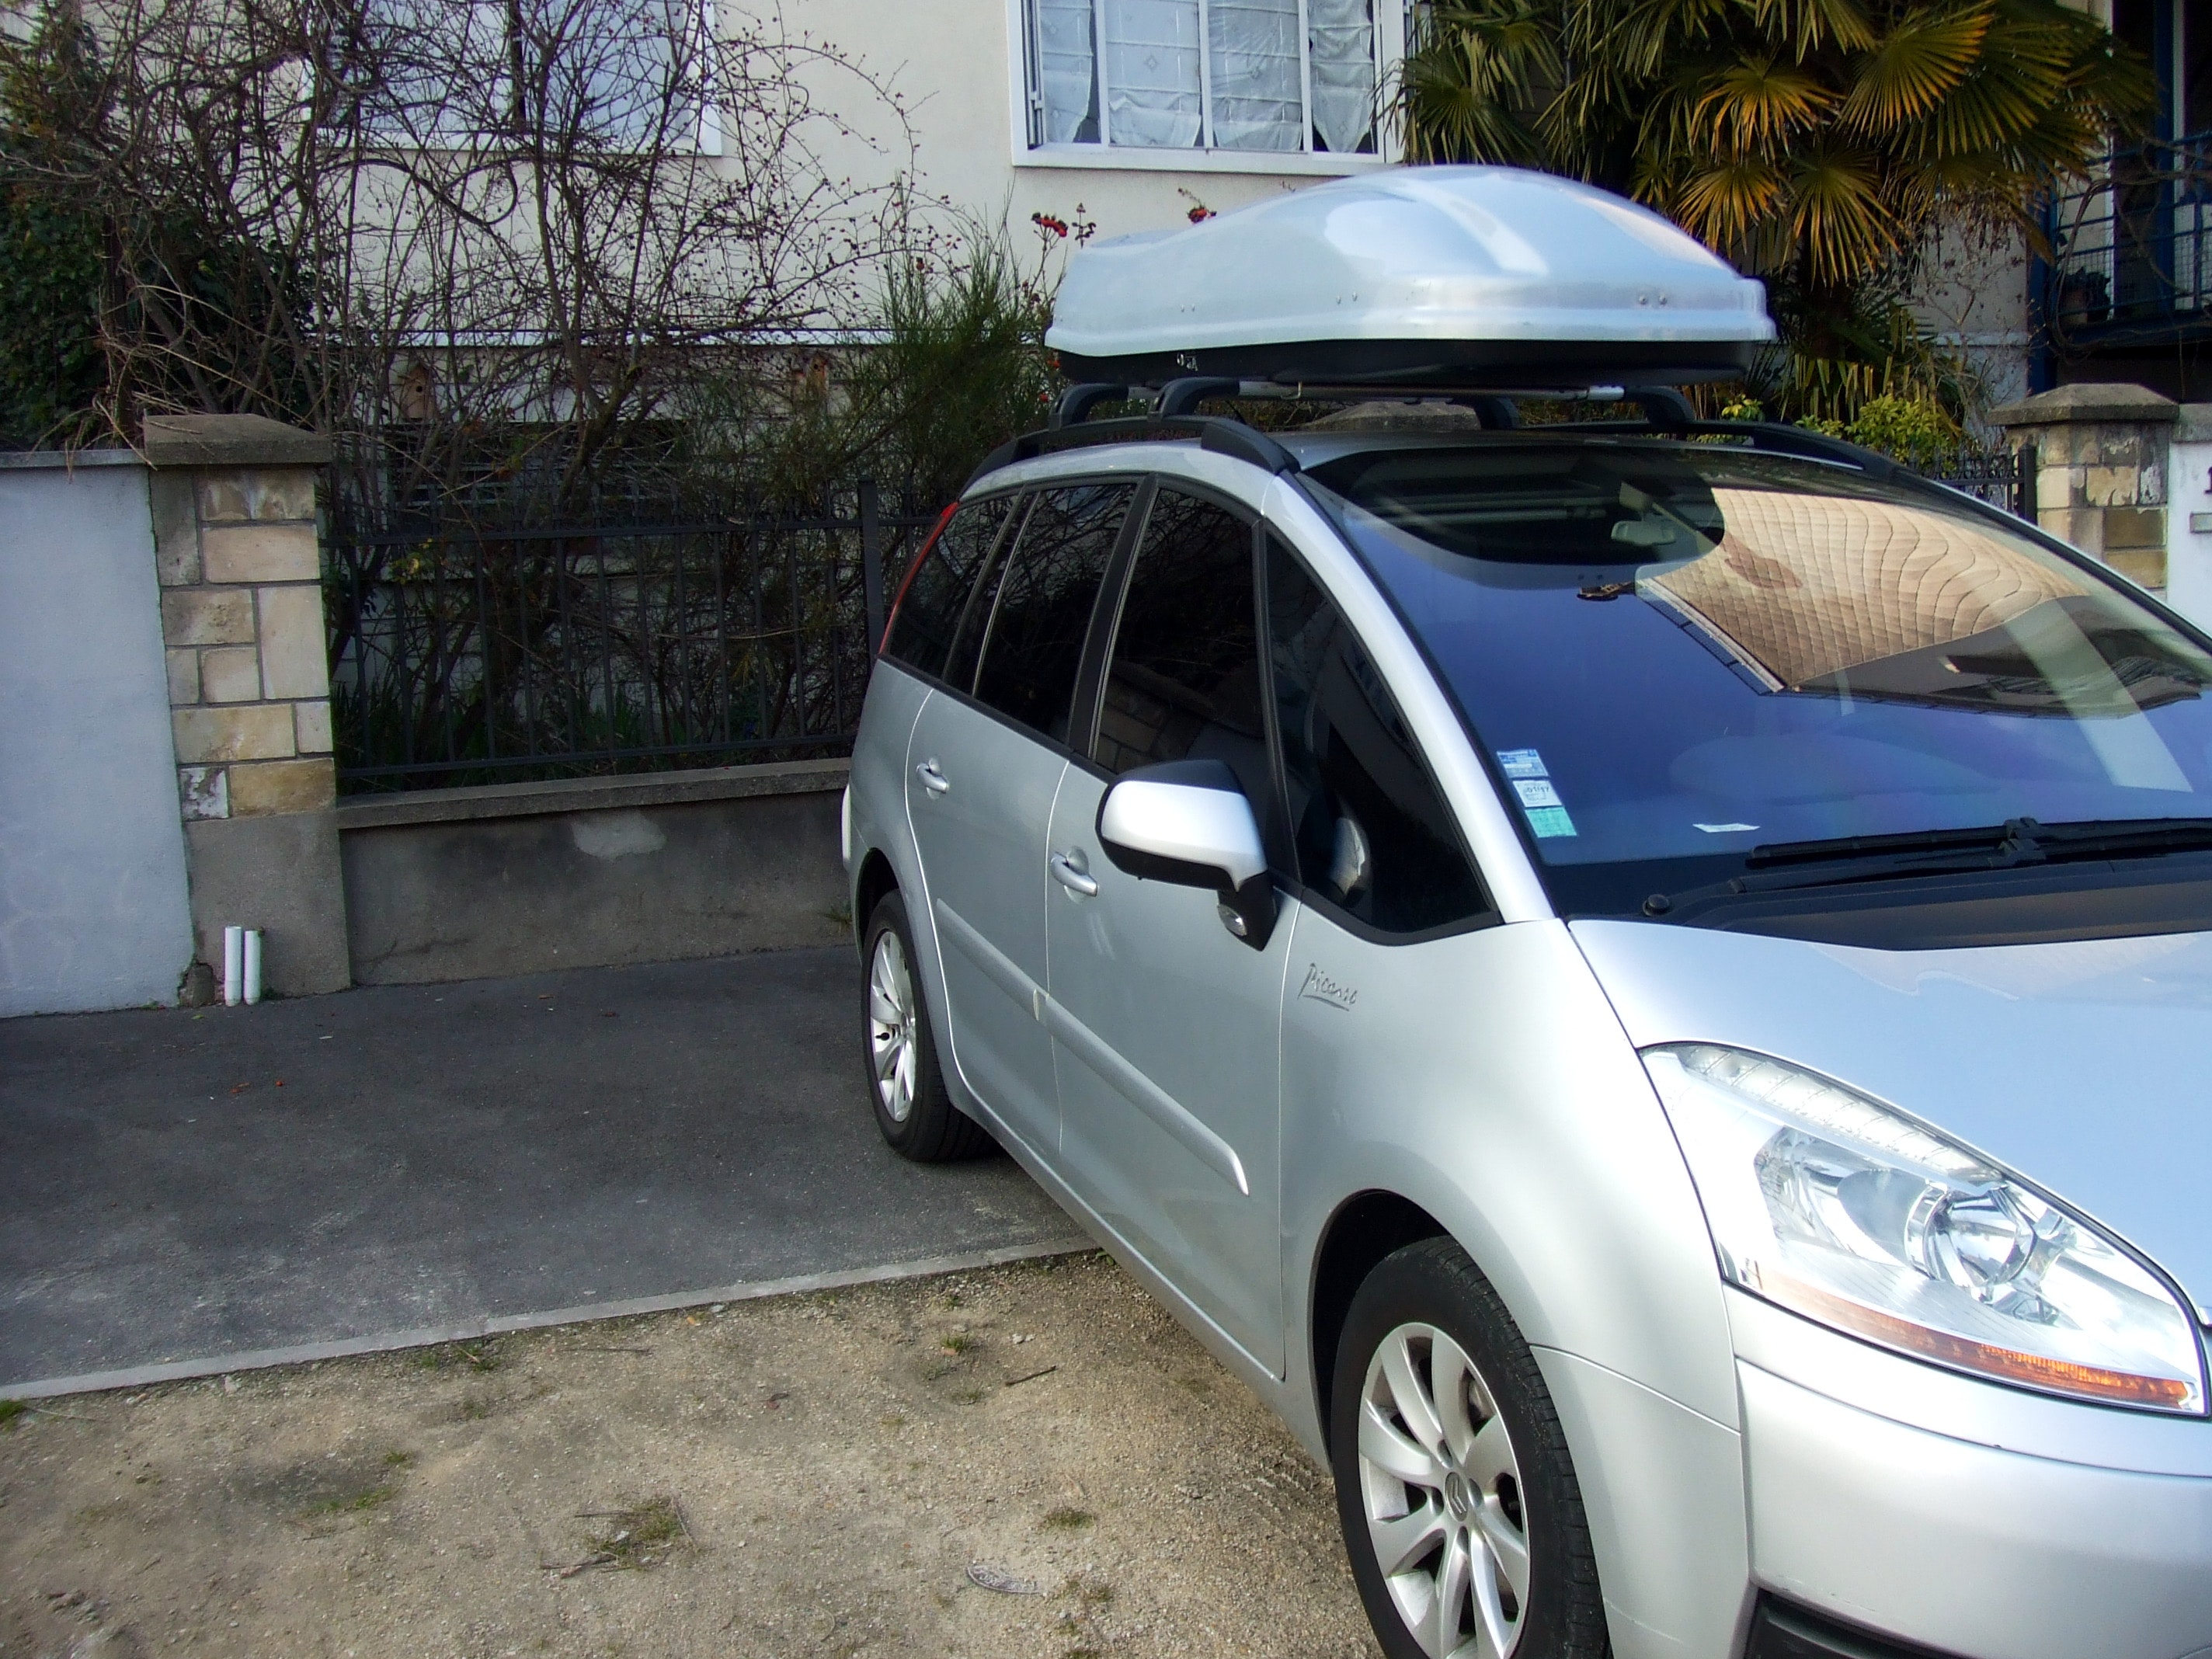 location citroen c4 grand picasso 2008 diesel automatique 7 places 224 issy les moulineaux avenue